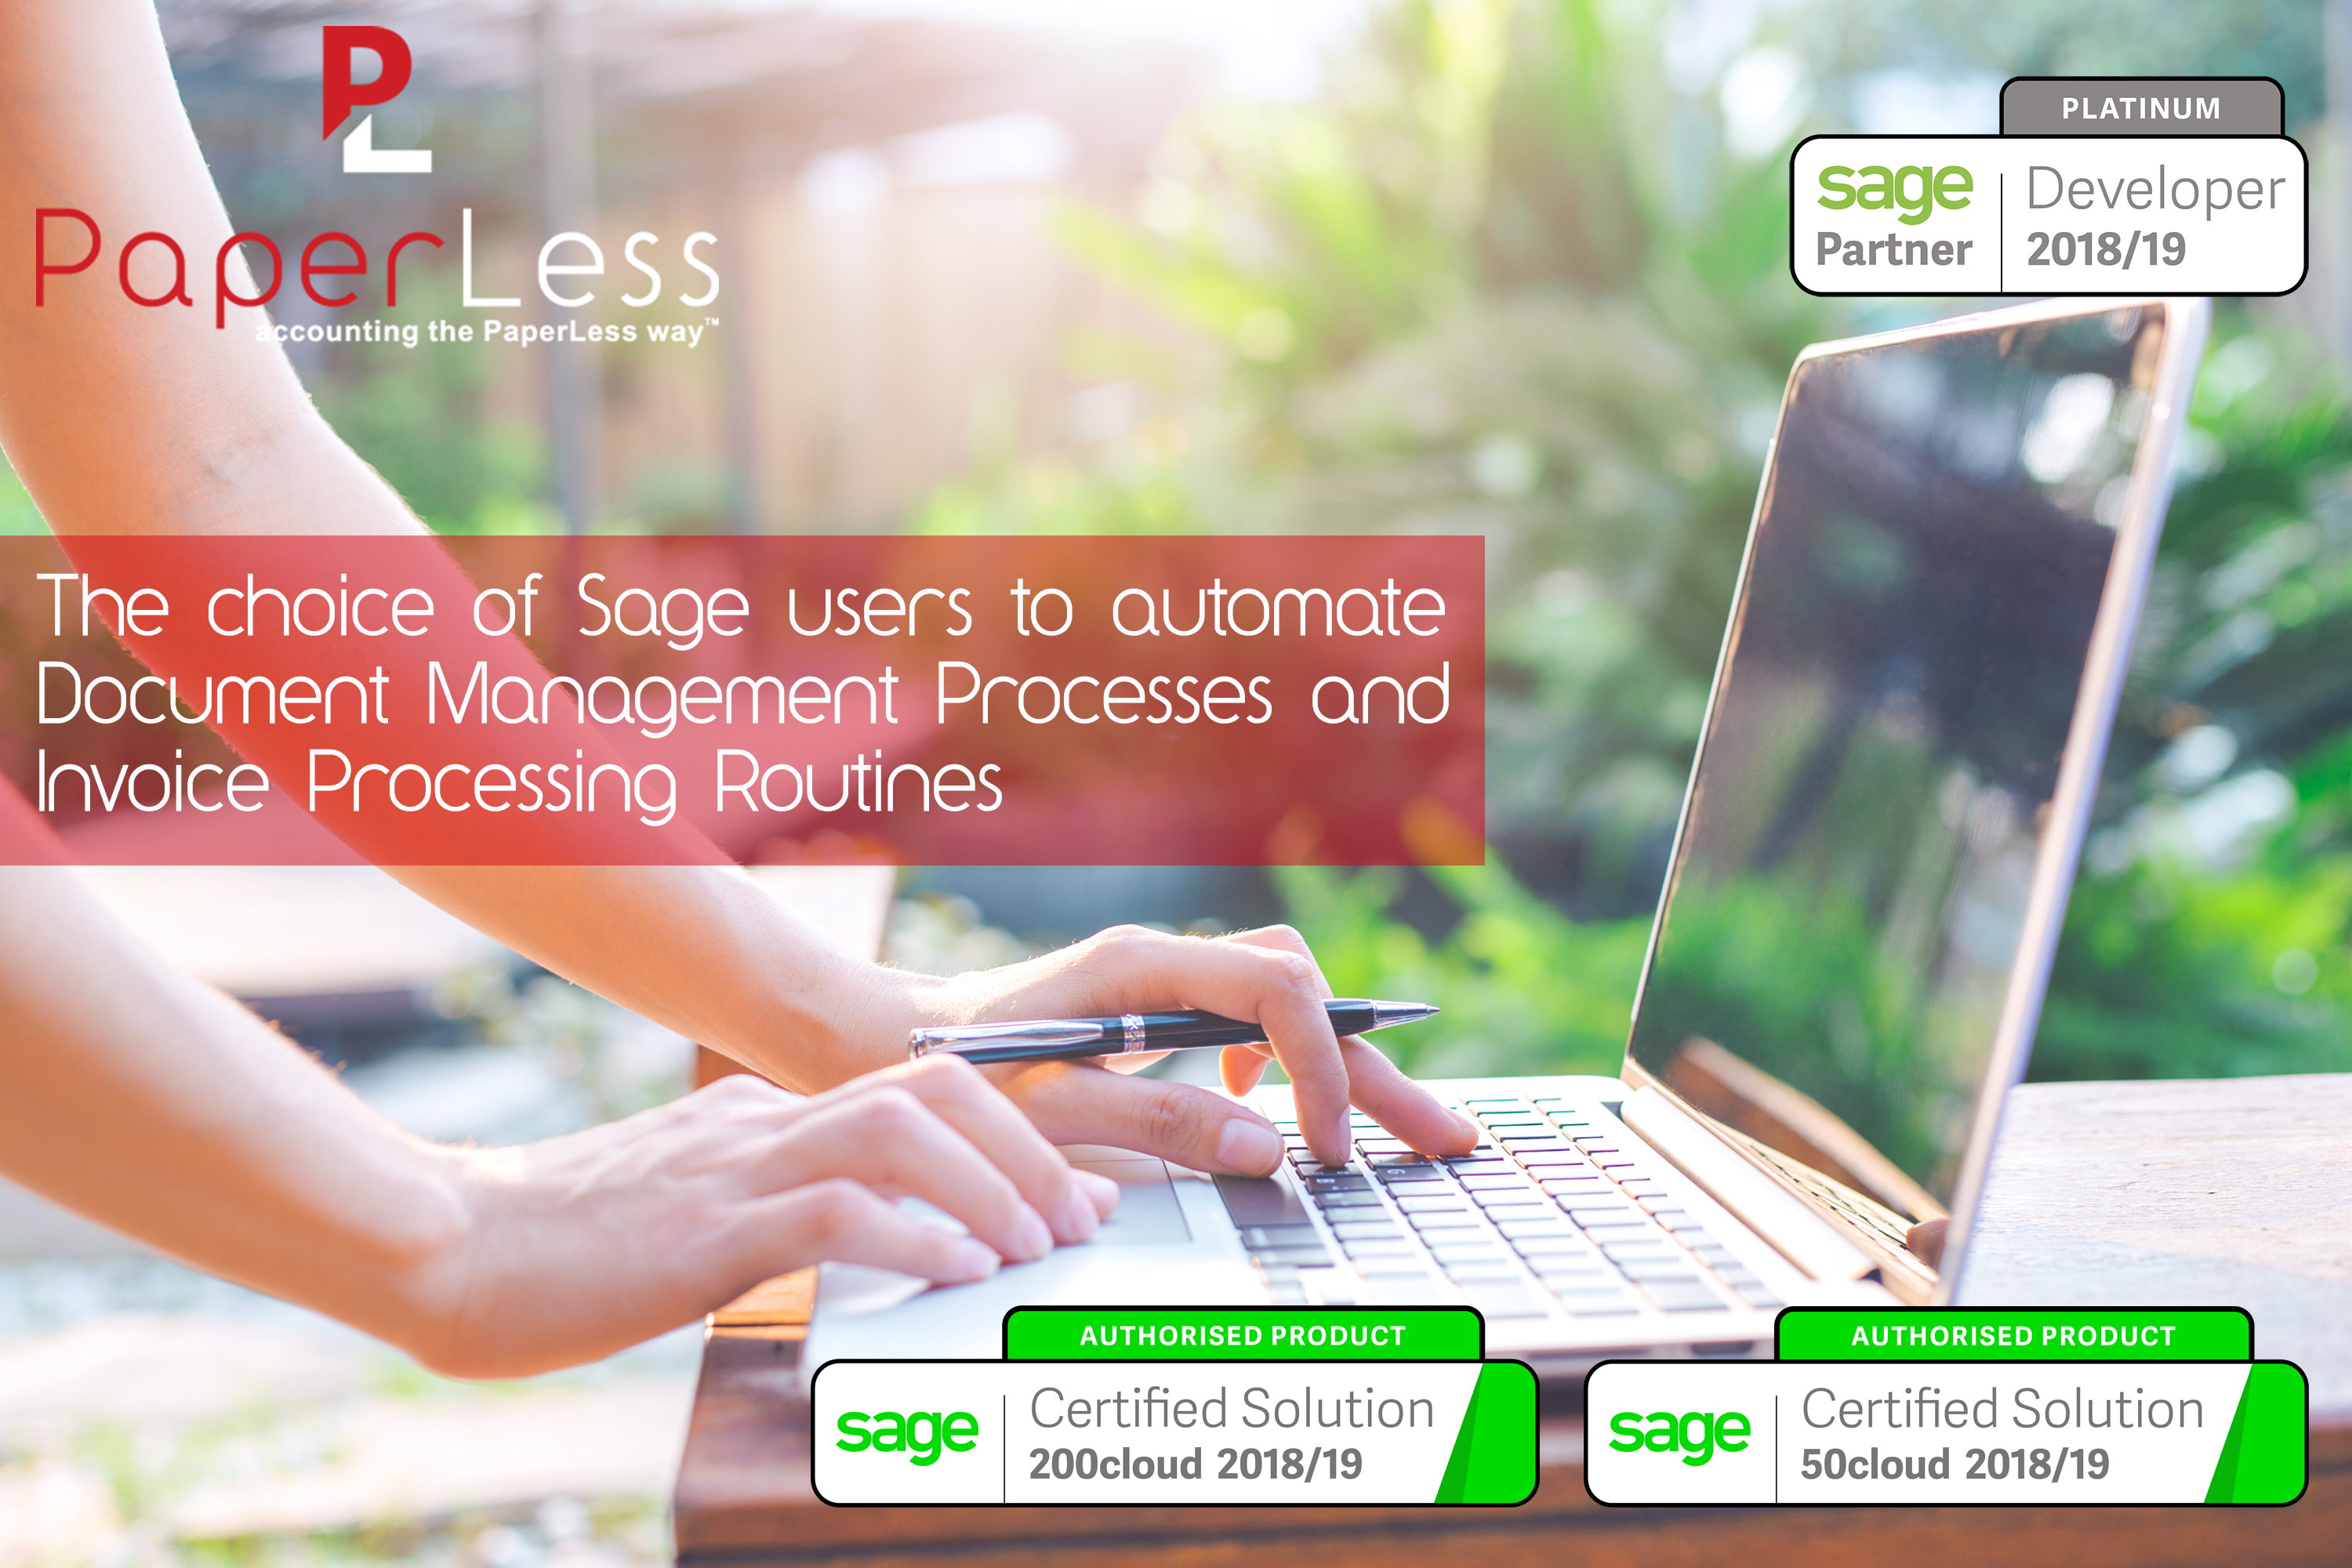 Click here to find out more about PaperLess Document Management for Sage Software